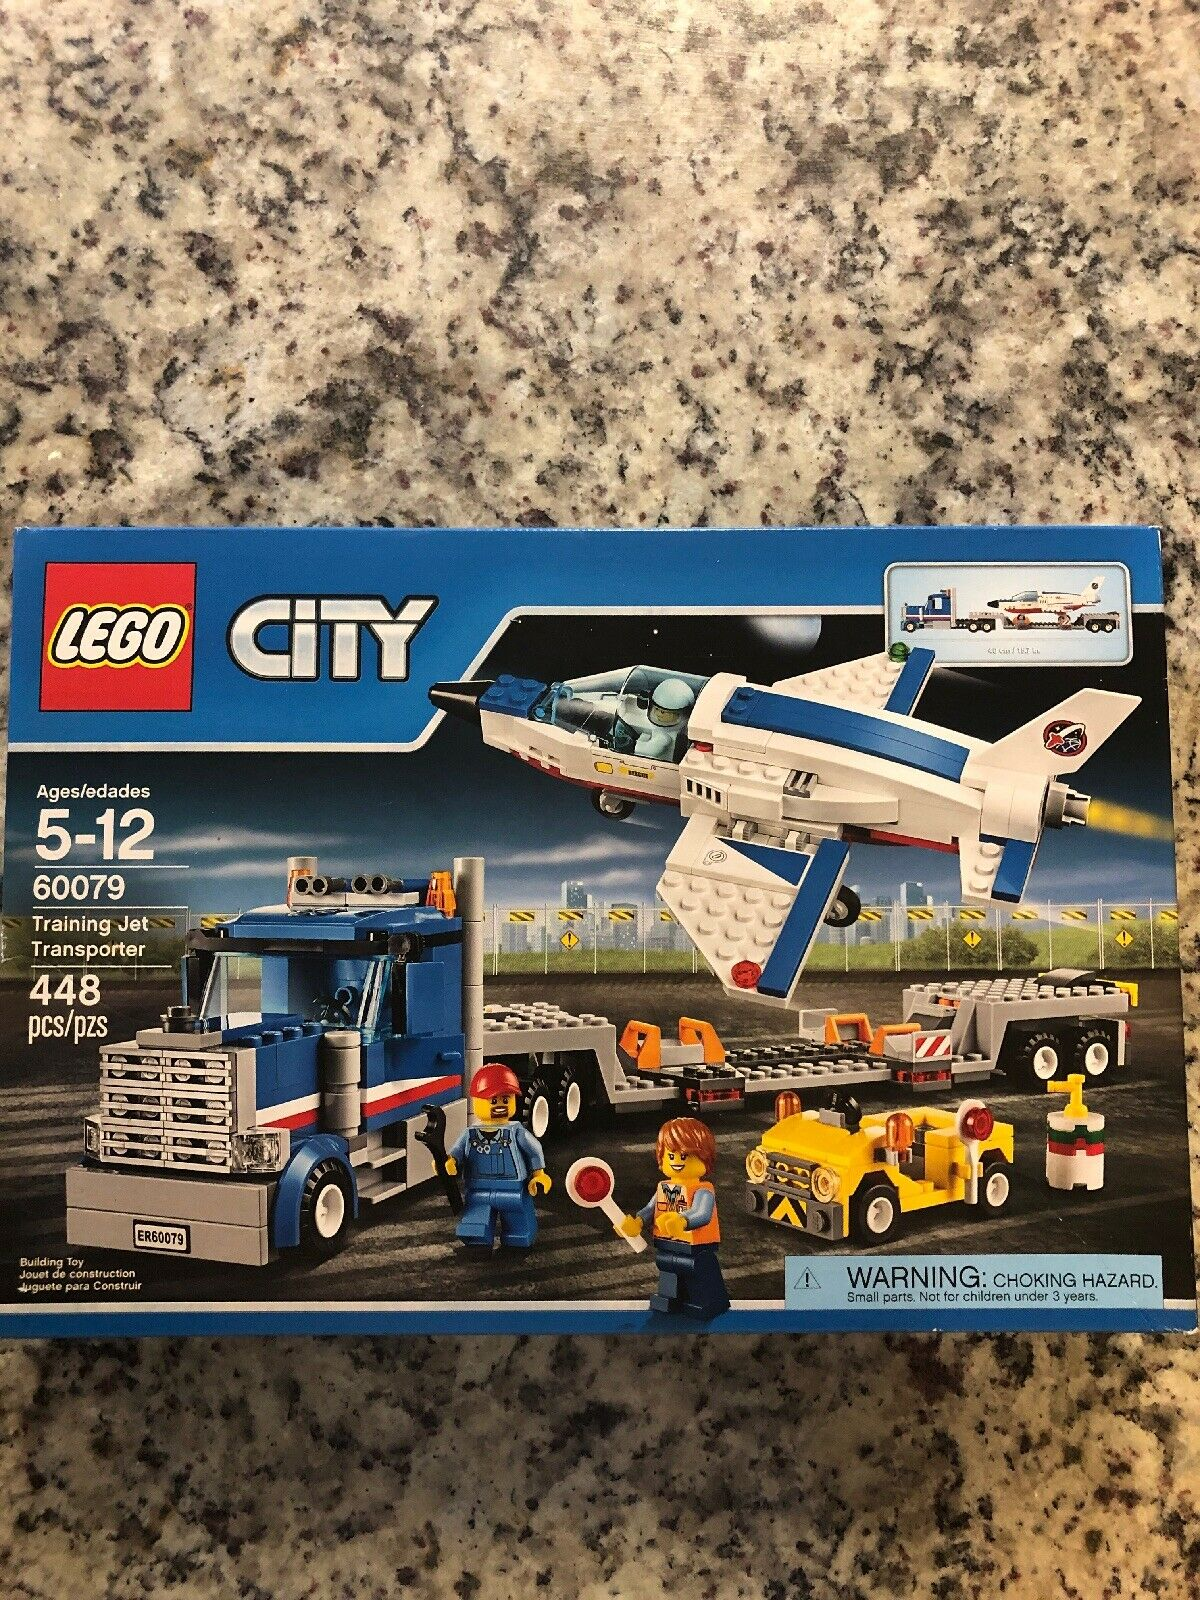 New Retired LEGO City Training Jet Transporter Transporter Transporter Set 60079 05287d